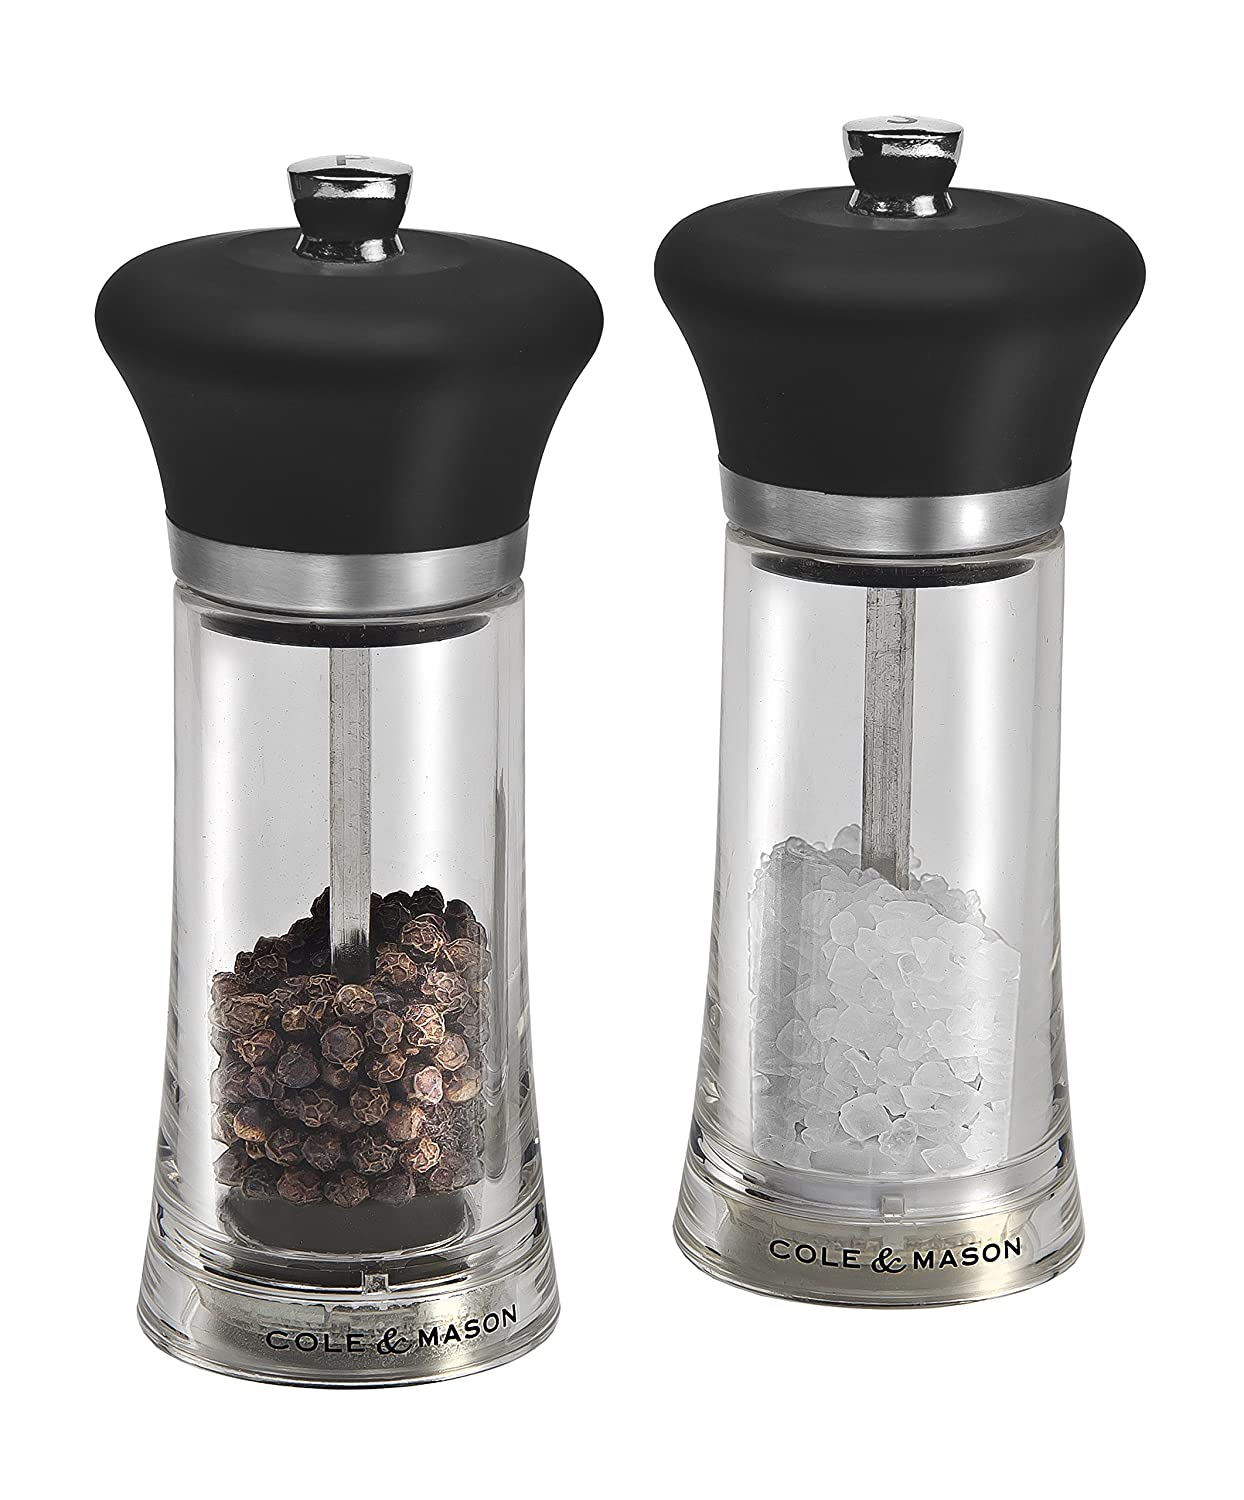 Cole & Mason H307298P Precision Huntingdon Salt and Pepper Mill Gift Set 140 mm, Transparent/Black DKB Household UK Ltd